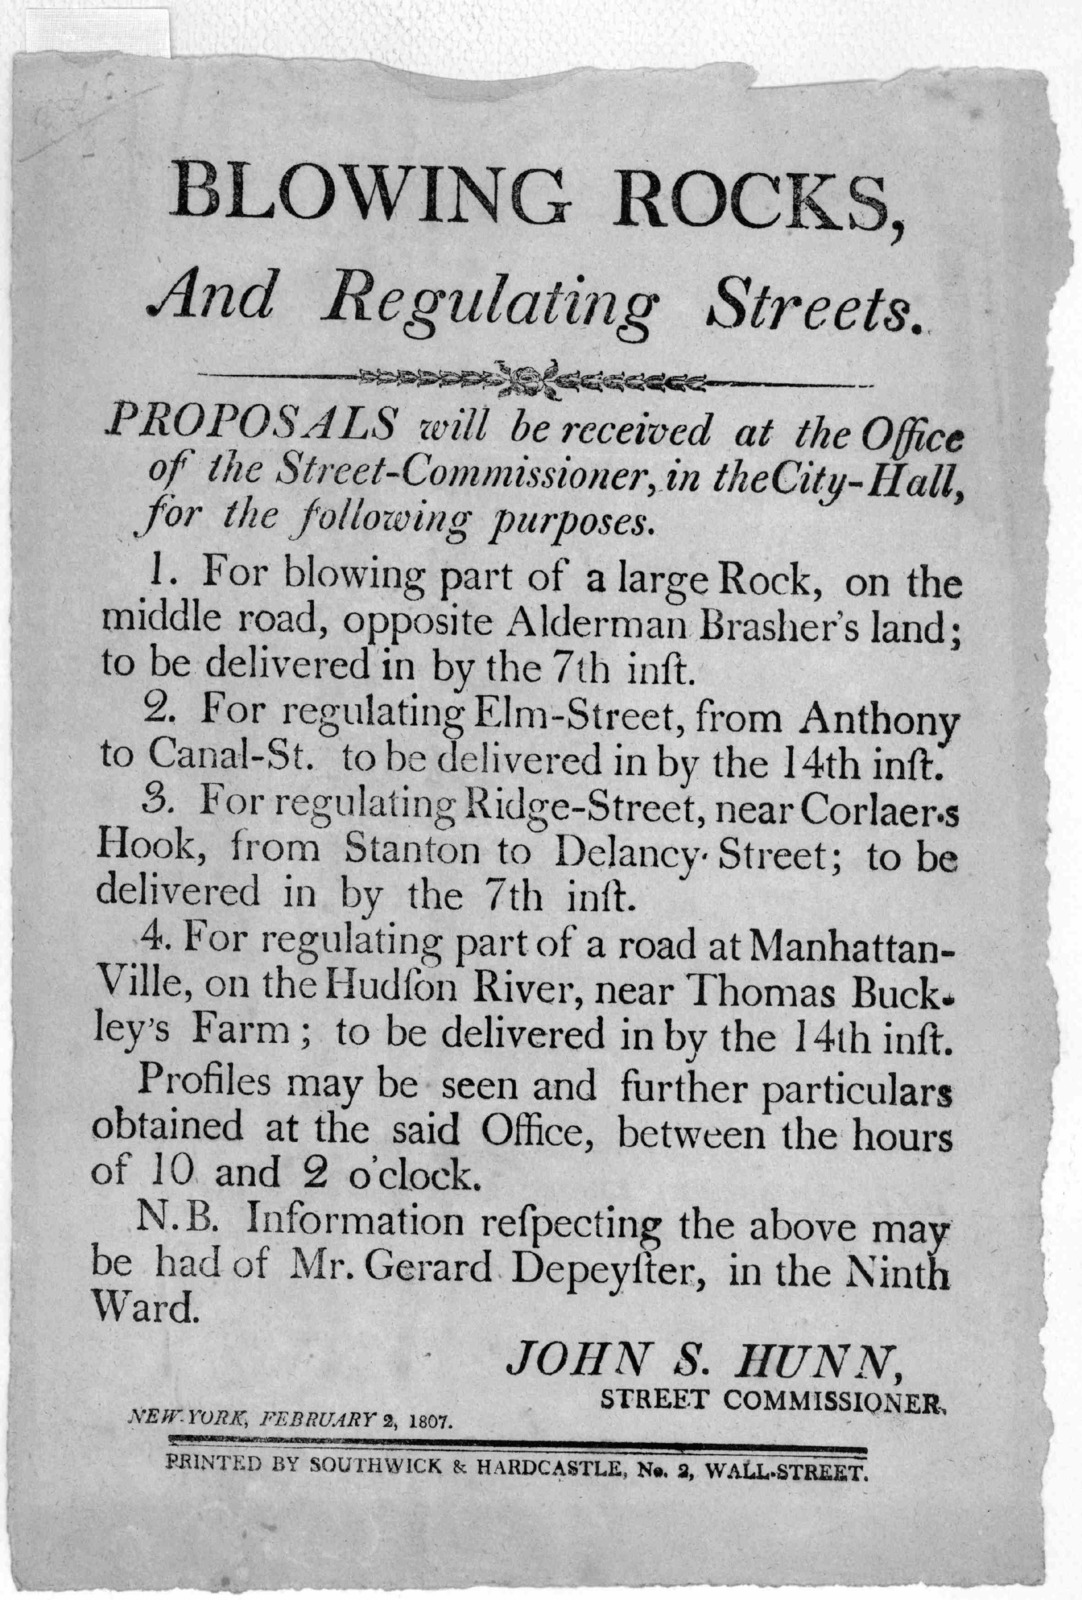 Blowing Rocks, and Regulating Streets. Proposals will be received at the Office of the Street-Commissioner, in the City-Hall, for the following purposes ... [Signed] John S. Hunn. Street Commissioner. New York, February 2, 1807. Printed by South